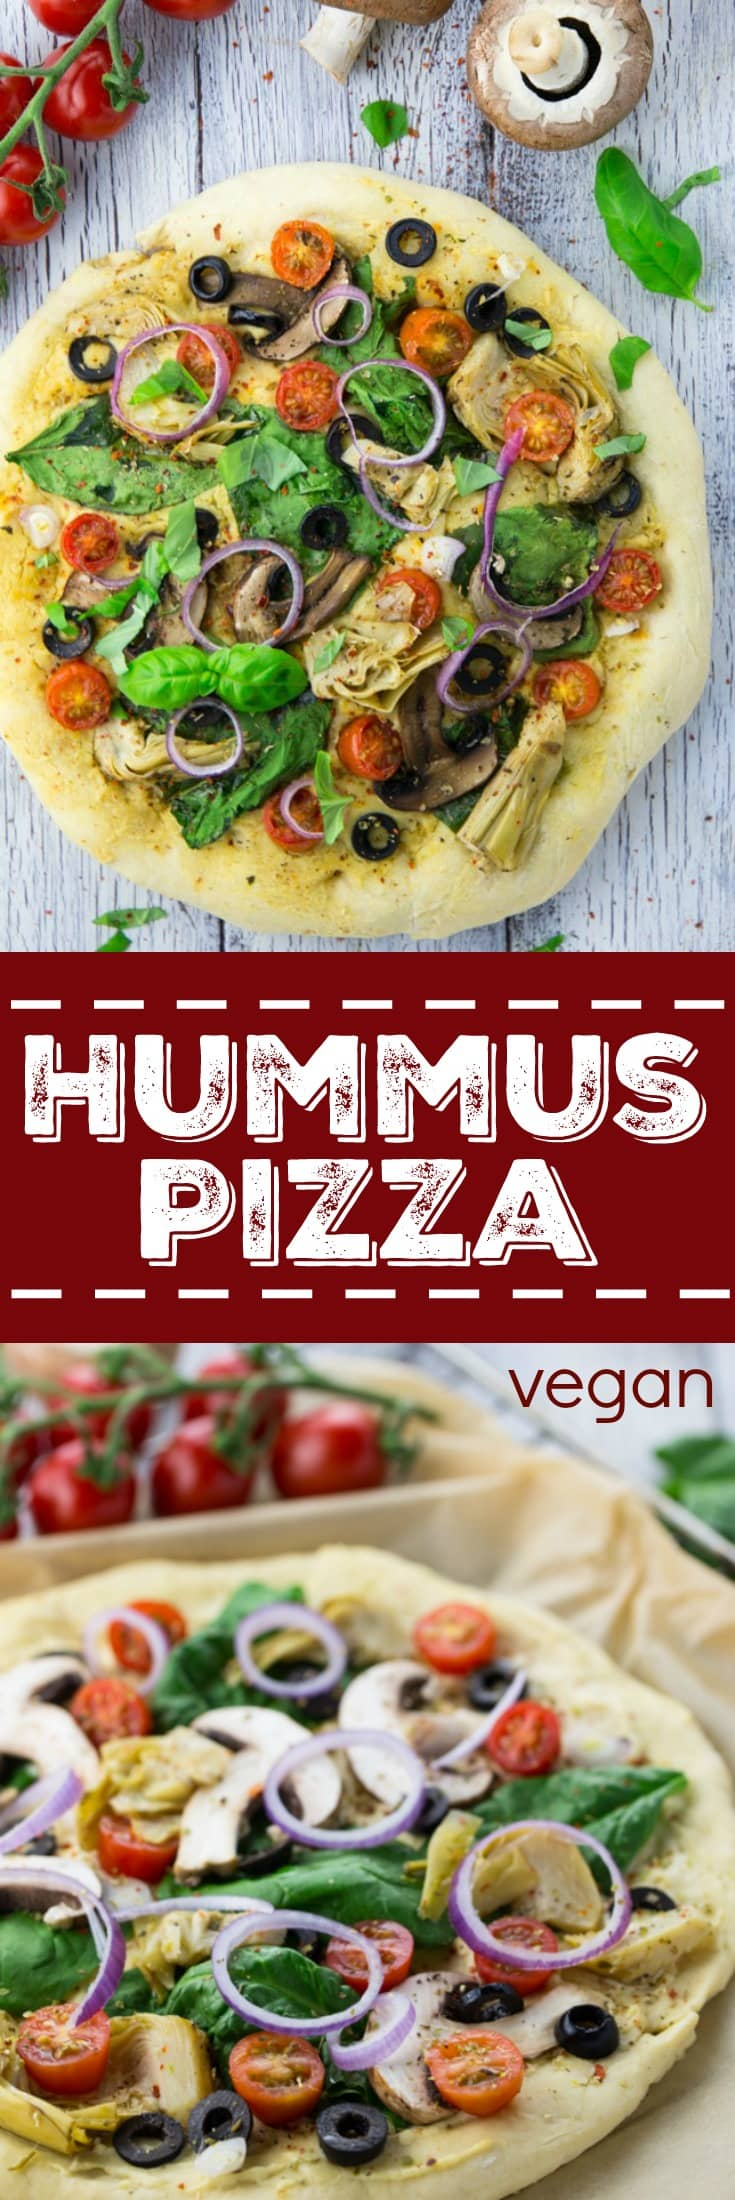 Hummus Pizza with Veggies - Vegan Heaven